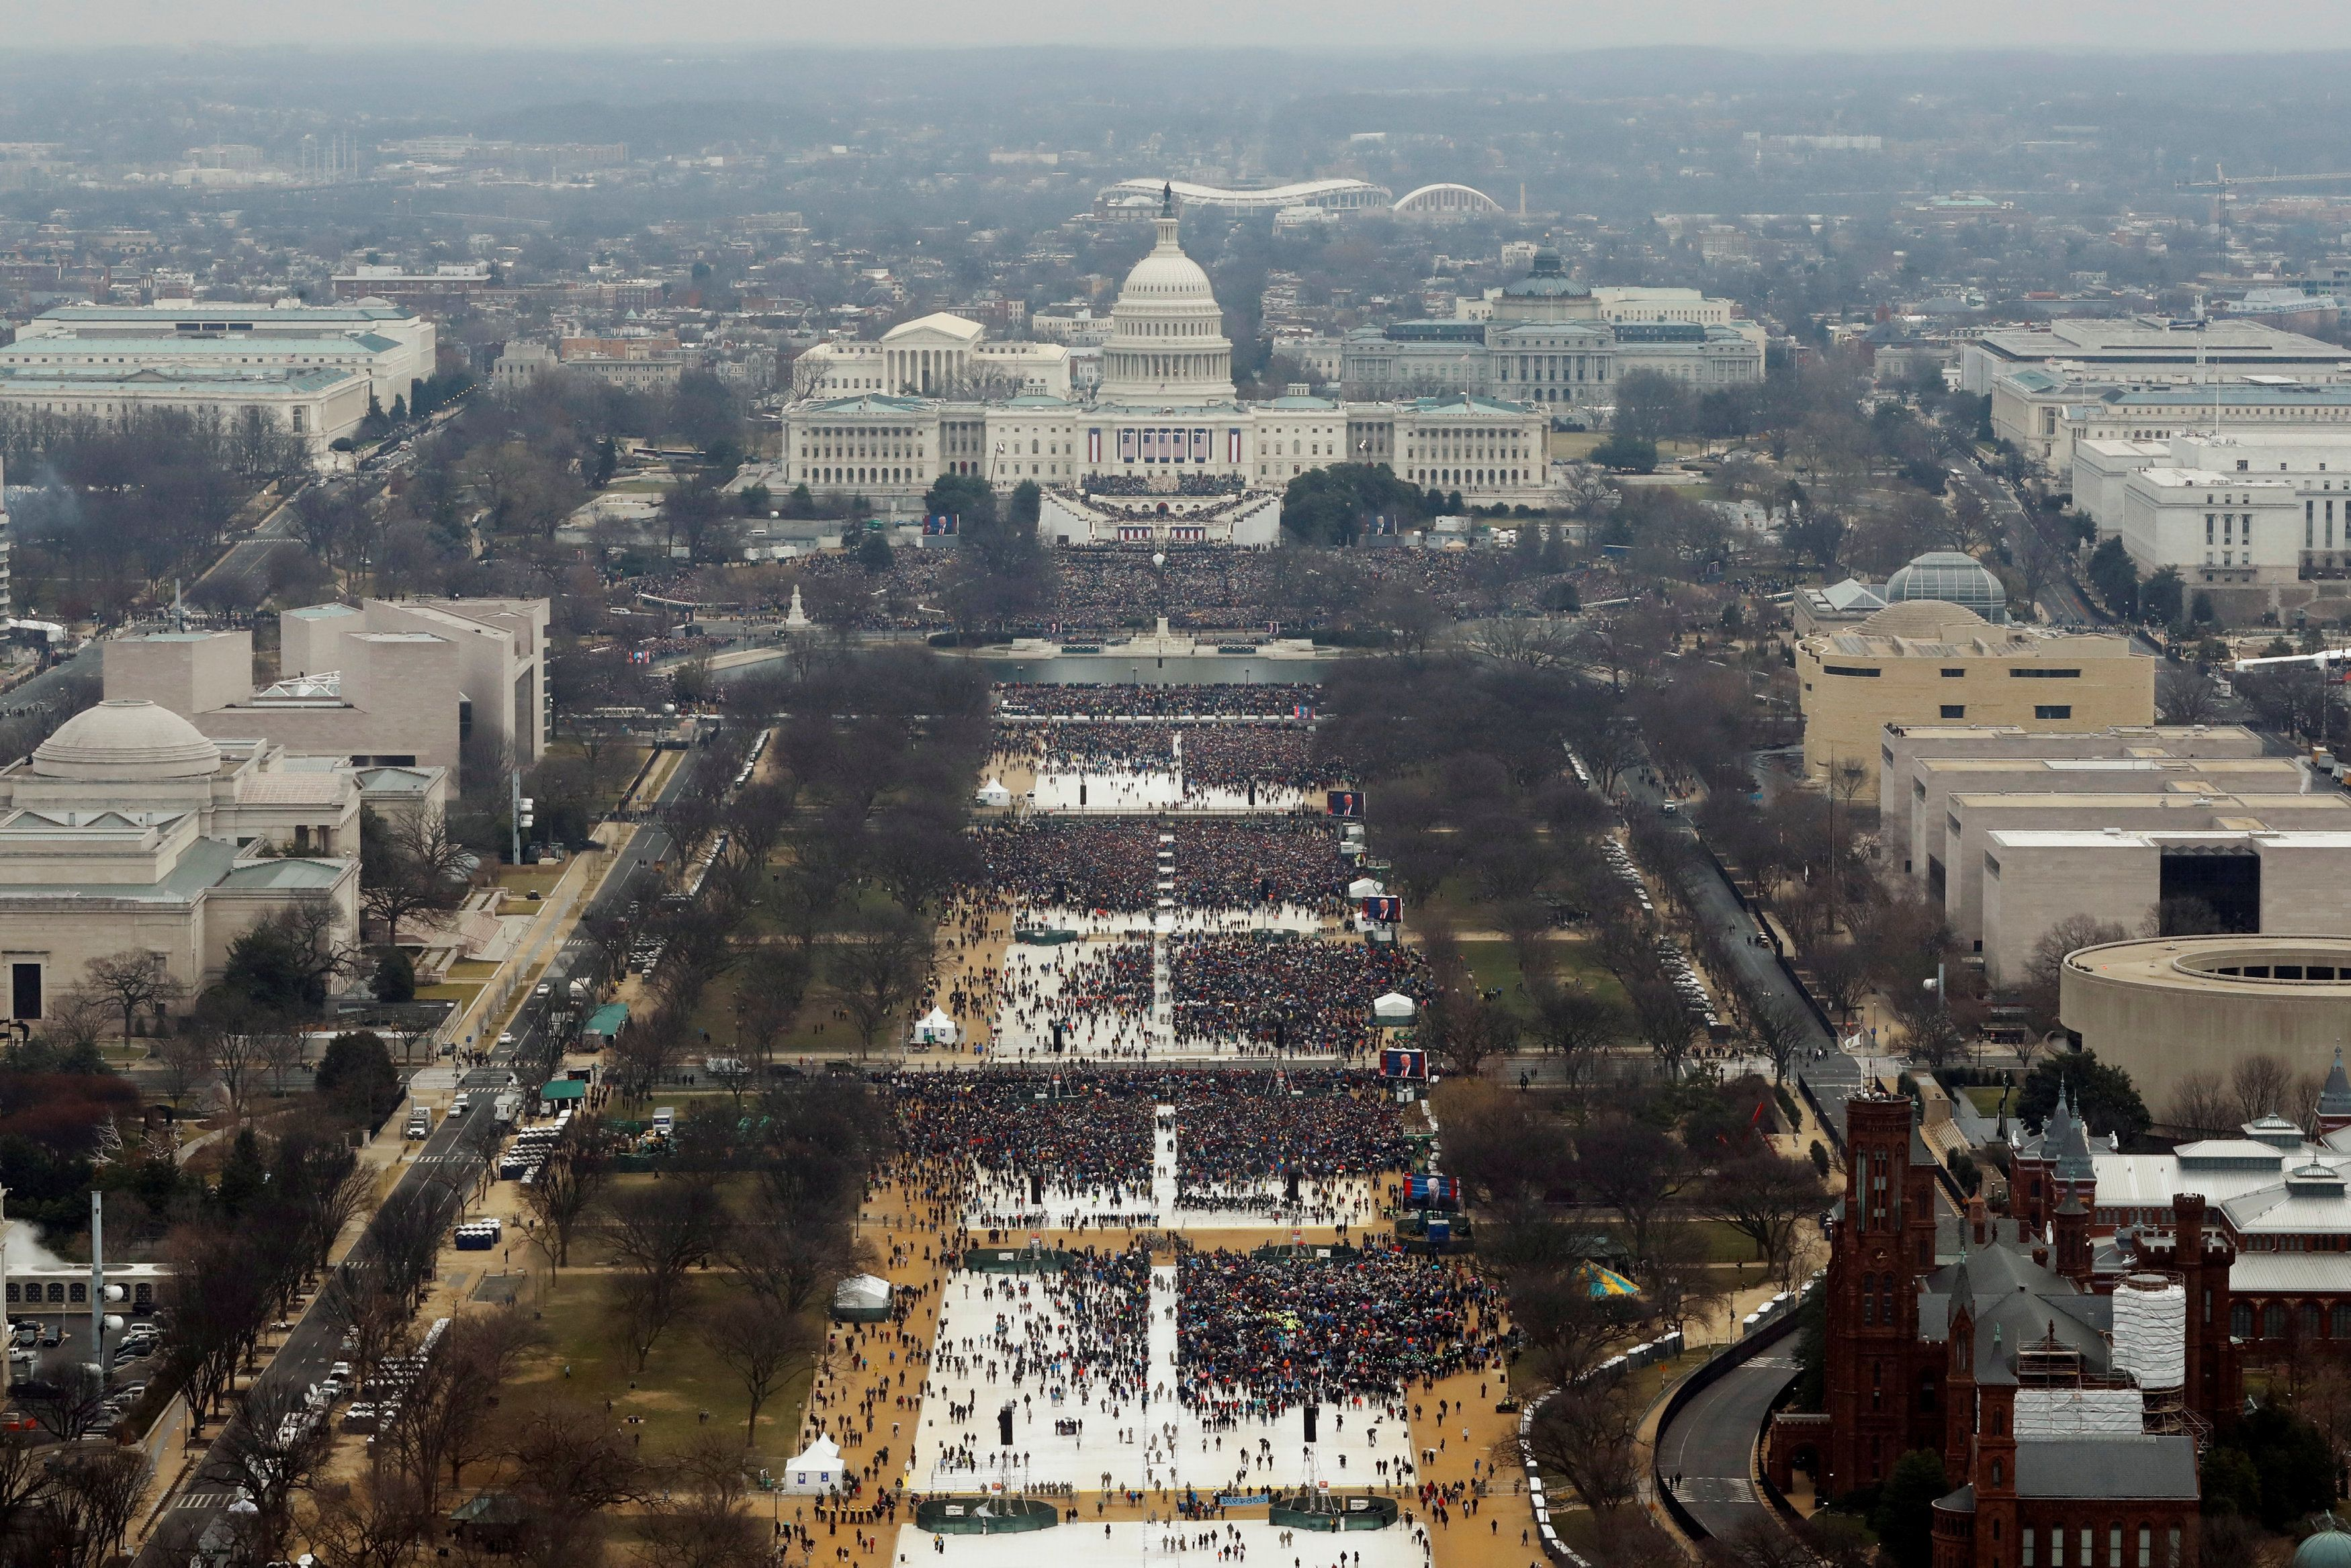 "Attendees partake in the inauguration ceremonies to swear in Donald Trump as the 45th president of the United States at the U.S. Capitol in Washington, U.S., January 20, 2017. Lucas Jackson: ""The assignment was simply to shoot the inauguration from the Washington Monument. To avoid confusion I made sure to transmit crowd pictures while Trump was onstage with the crowd at its peak. Twitter quickly erupted with claims that my images were taken early in the morning or photoshopped to remove attendees. At his first briefing, the President's new press secretary, Sean Spicer, said: ""Photographs of the inaugural proceedings were intentionally framed in a way, in one particular tweet, to minimize the enormous support that had gathered on the National Mall. This was also the first time that fencing and magnetometers went as far back on the Mall, preventing hundreds of thousands of people from being able to access the Mall as quickly as they had in inaugurations past."" This was not true. It was a new experience to have the validity of such a straightforward image questioned. After that press conference the picture was everywhere. Later, CNN released an image it took from the portico of the U.S. Capitol as Trump was sworn in. That vantage point is several hundred feet lower than the Washington Monument so the crowd looks bigger than in my picture. A second wave of 'liar' inundated me on Twitter. I ignored the noise but posted a copy of my image on Instagram with the caption: ""Perspective; it matters."" Later people noticed that the clock on the Smithsonian building in my picture shows the time at 1:15. Social media tried to claim my images were taken over an hour after the inauguration once the crowd had thinned. But the Smithsonian said its clock was broken and was stuck on that time."" REUTERS/Lucas Jackson/File photo  SEARCH ""POY STORY"" FOR THIS STORY. SEARCH ""REUTERS POY"" FOR ALL BEST OF 2017 PACKAGES. TPX IMAGES OF THE DAY."